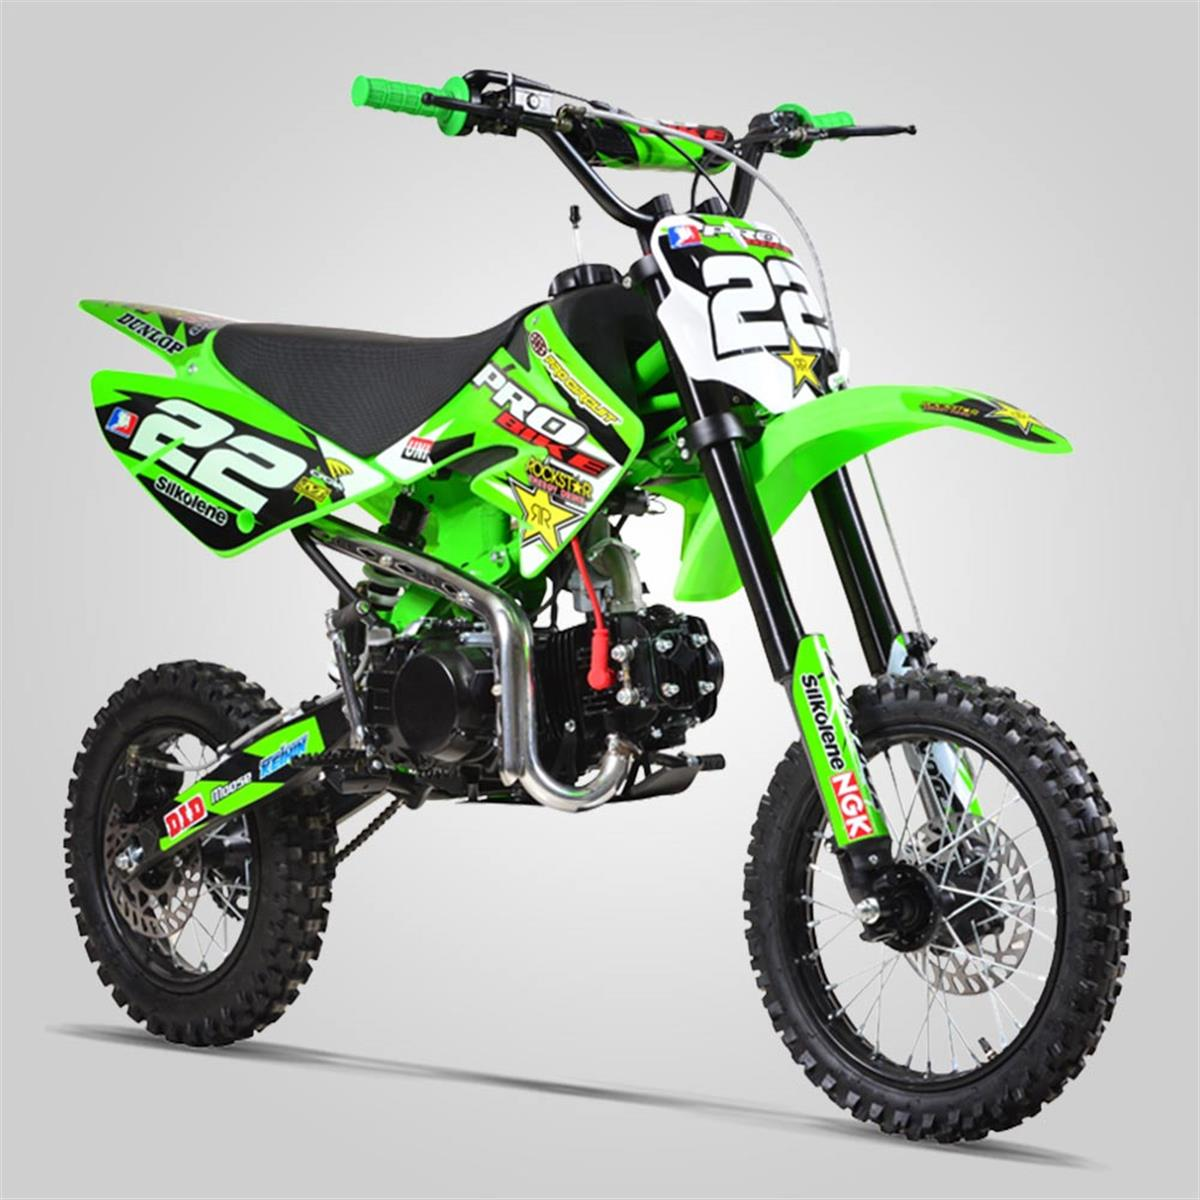 dirt bike 140cc probike yx s 14 17 sur small mx smallmx. Black Bedroom Furniture Sets. Home Design Ideas